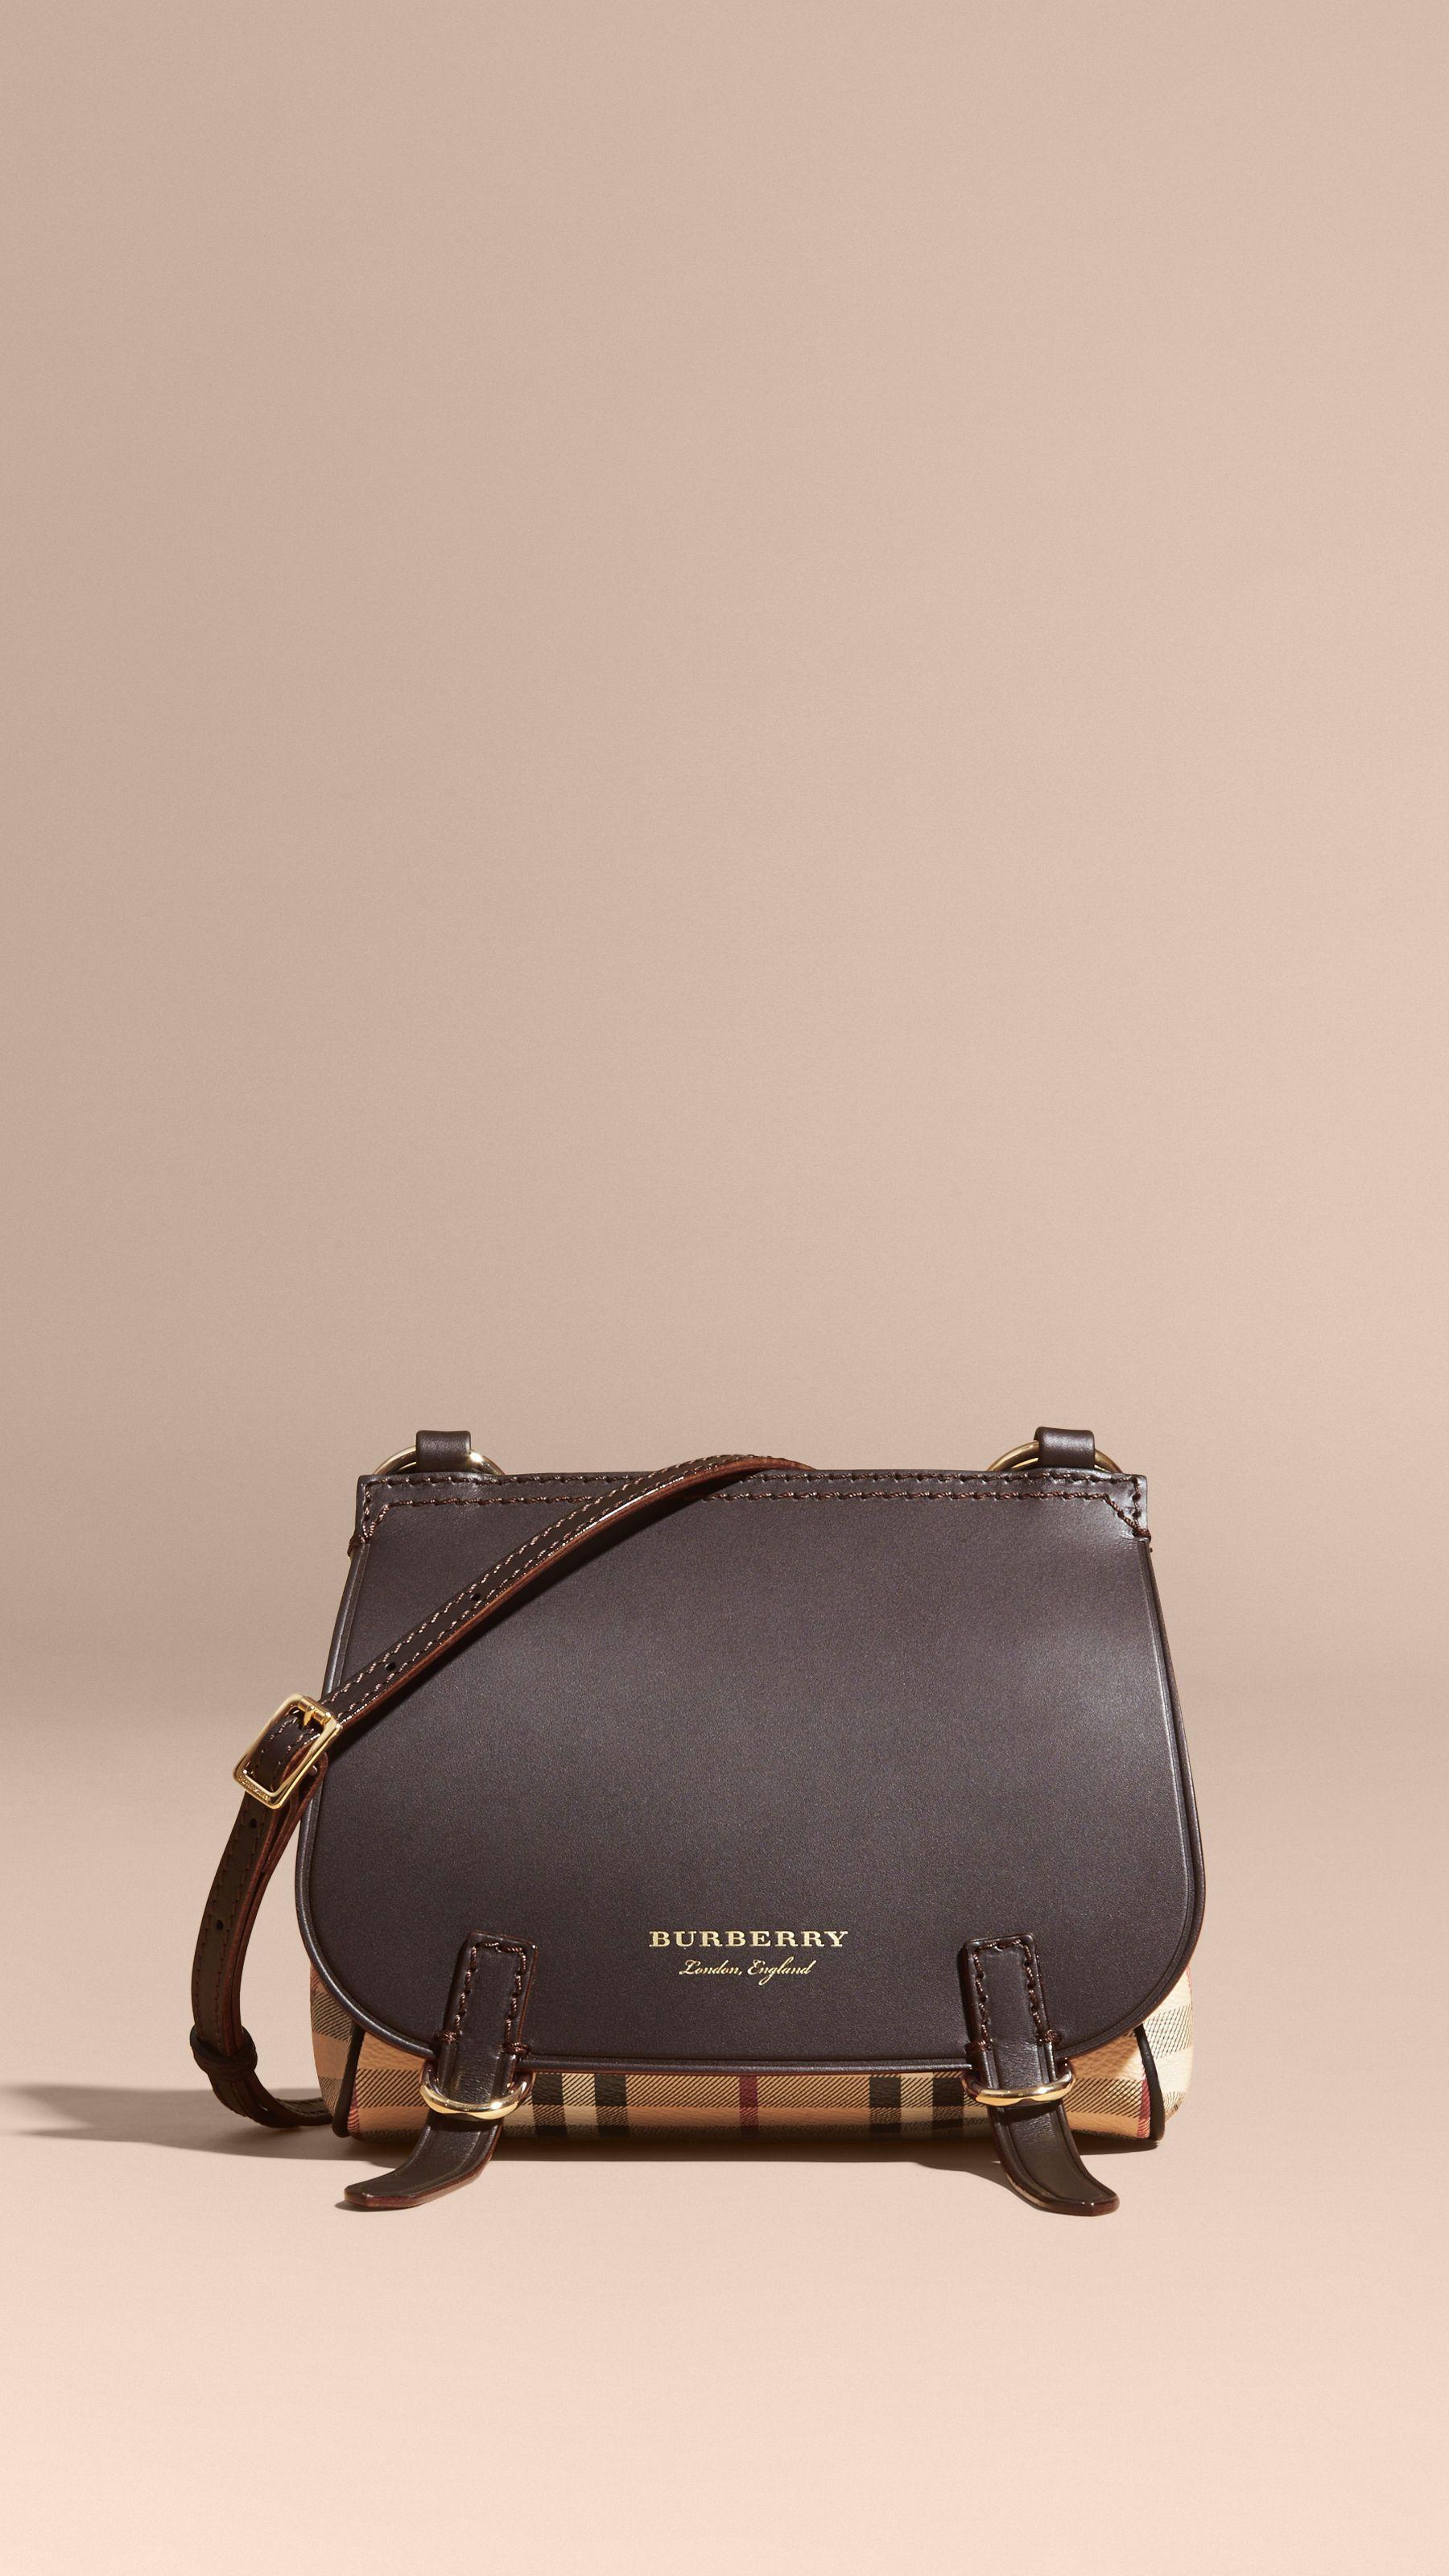 52c0e6b3718a The Baby Bridle Bag in Leather and Haymarket Check Dark Clove Brown